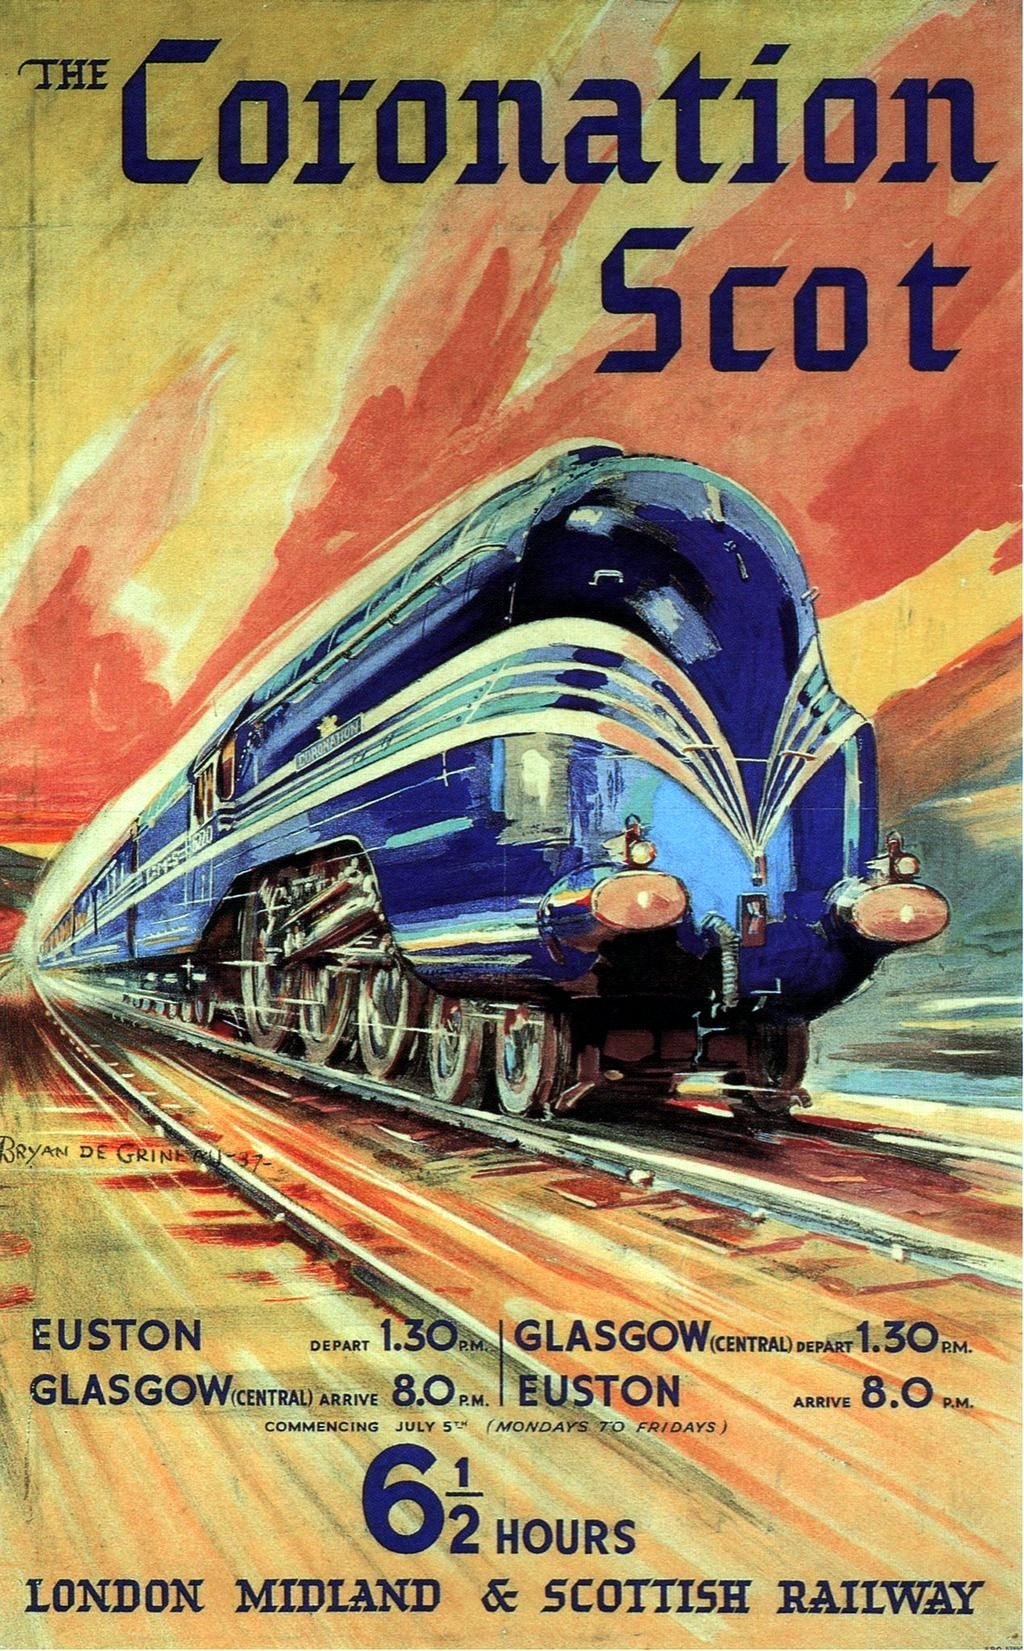 """The Coronation Scot"""" - Six and a half hours From Euston to Glasgow, 1937. Artist Bryan de Grineau."""